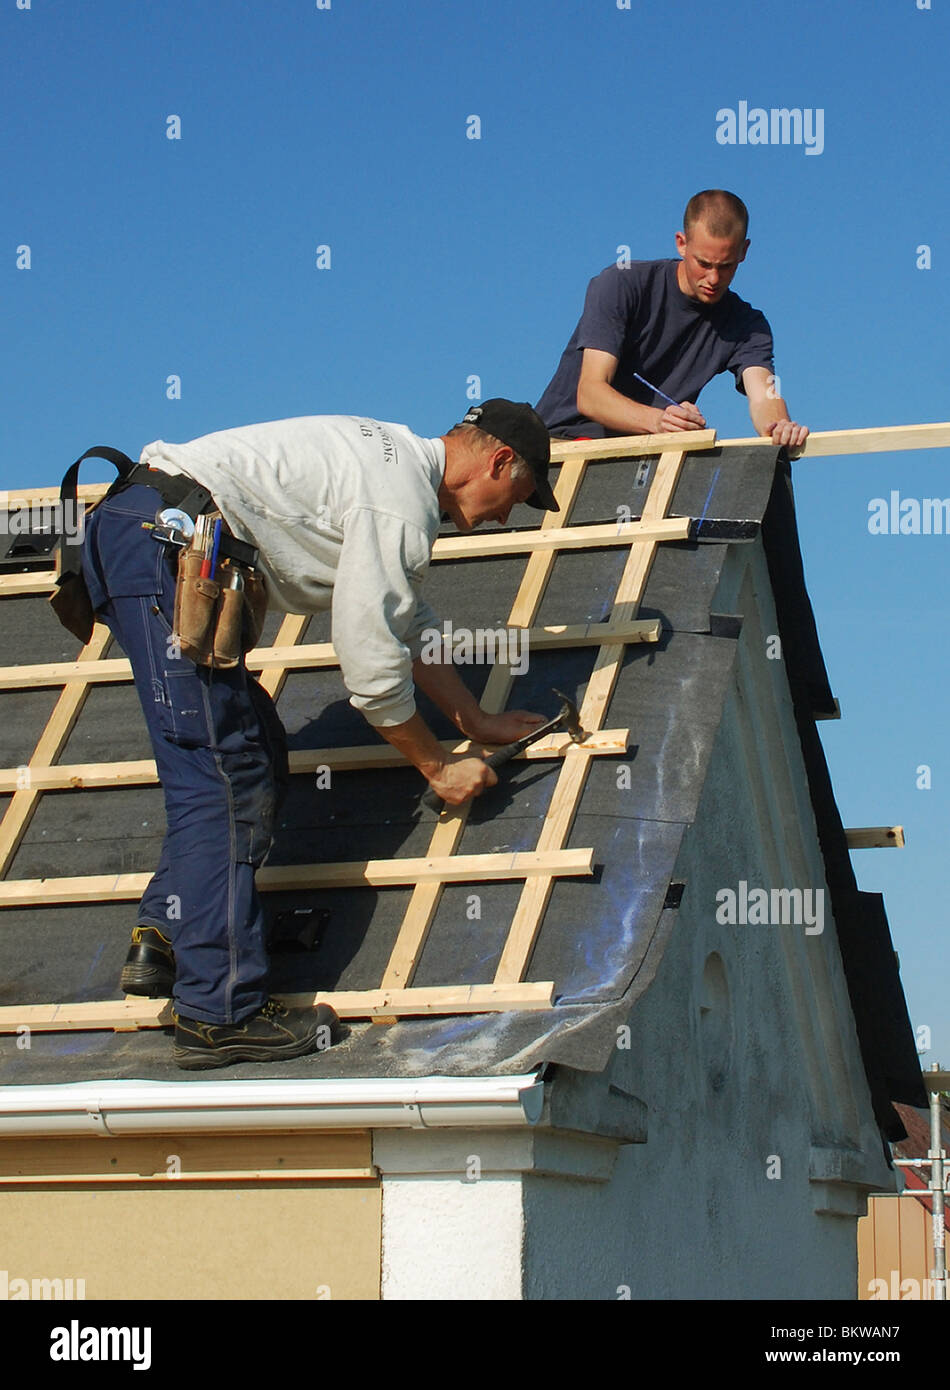 carpenter on roof - Stock Image